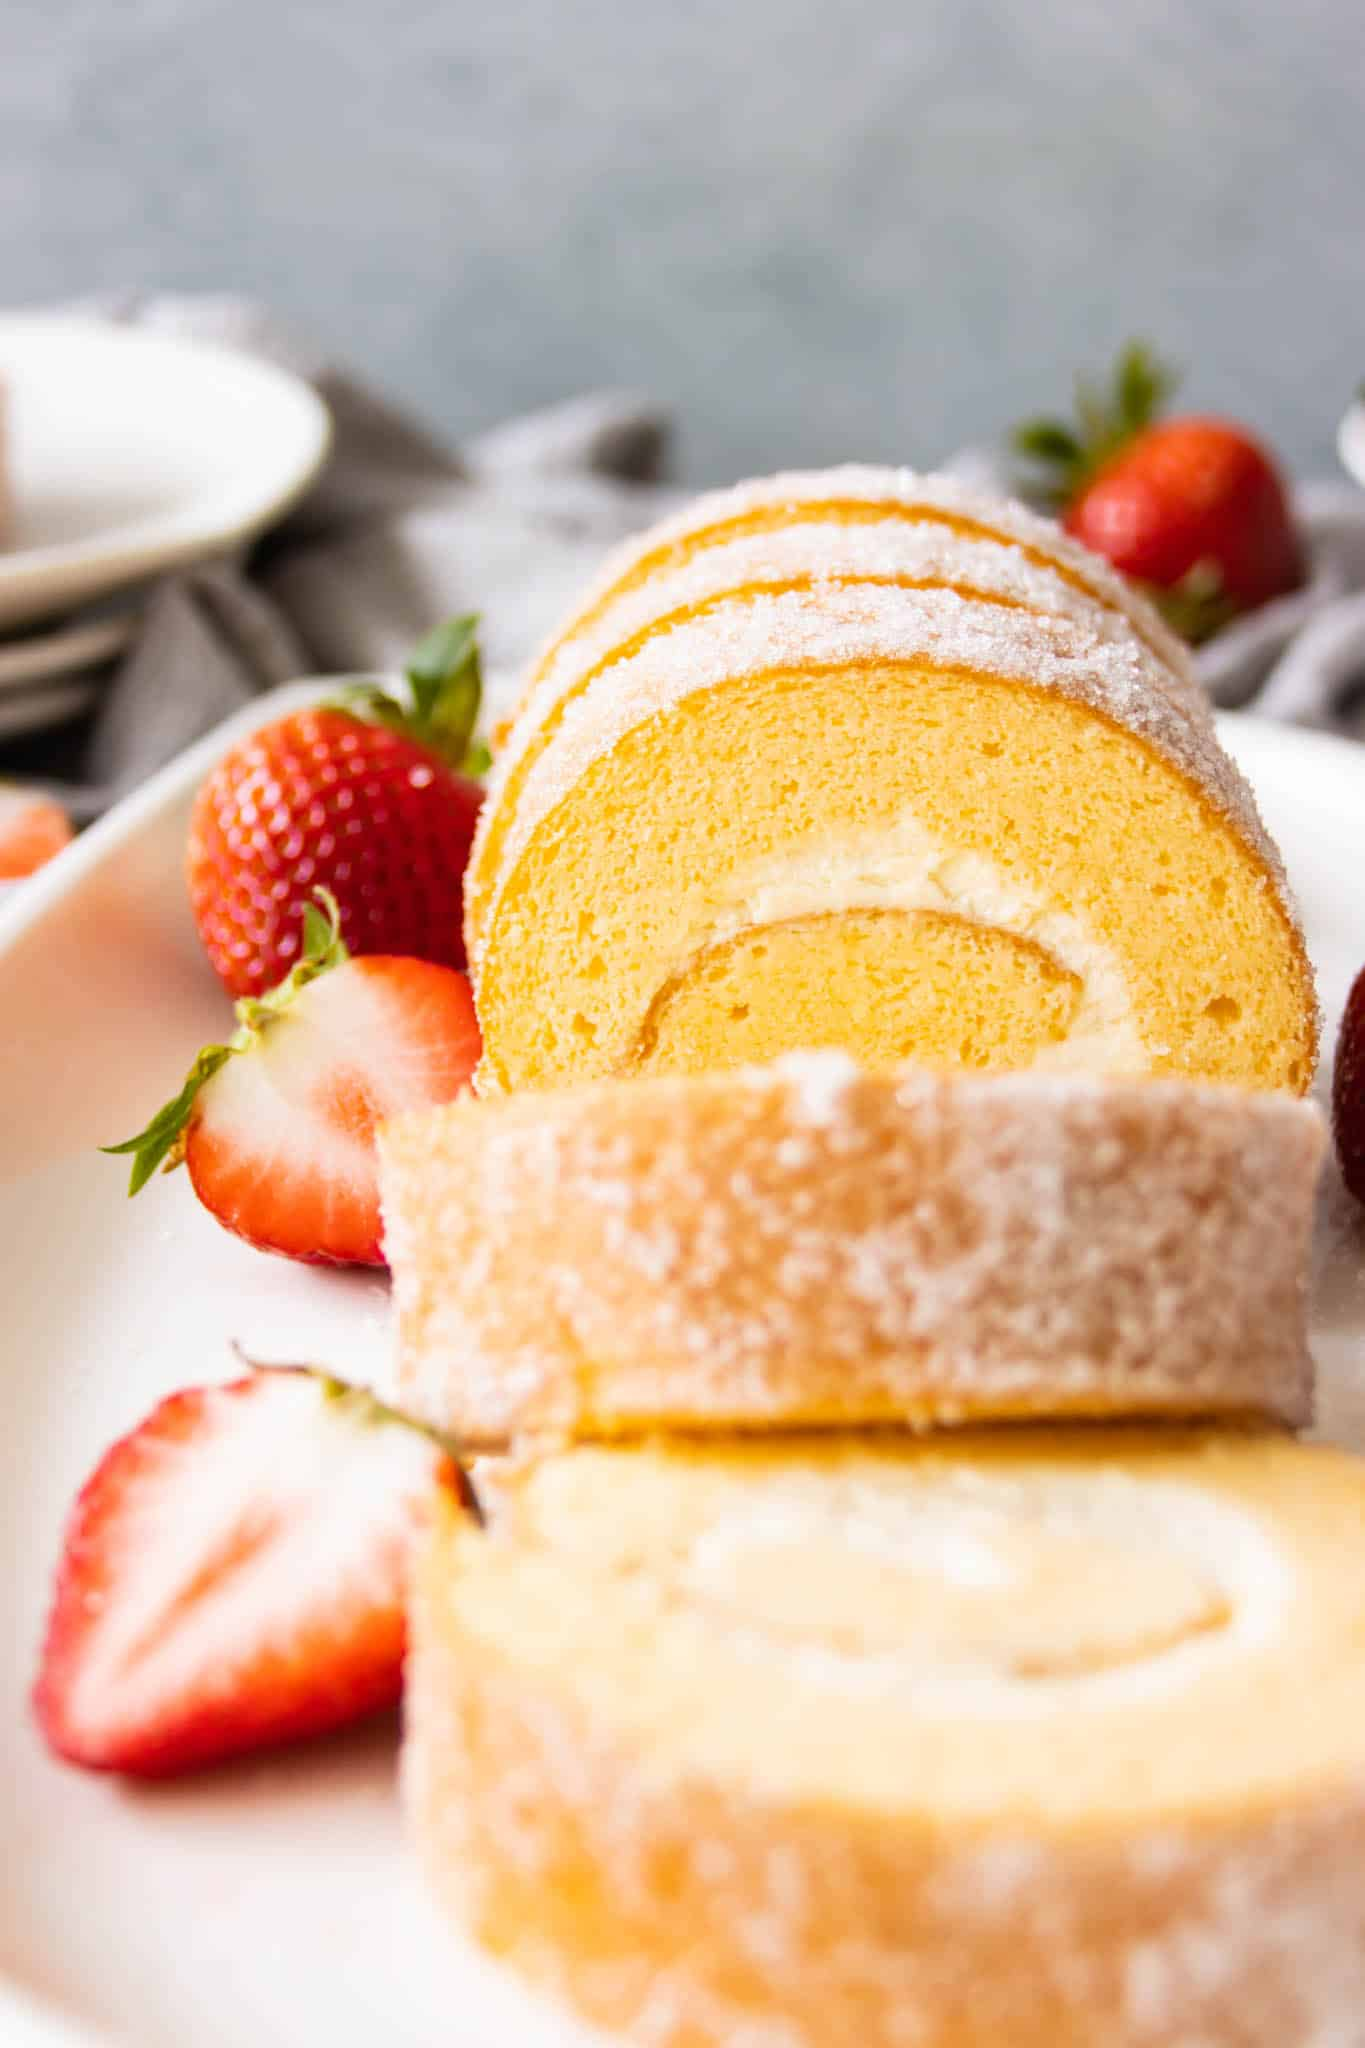 Sugar-coated vanilla Swiss roll cake filled with Chantilly cream, and served with fresh strawberries.